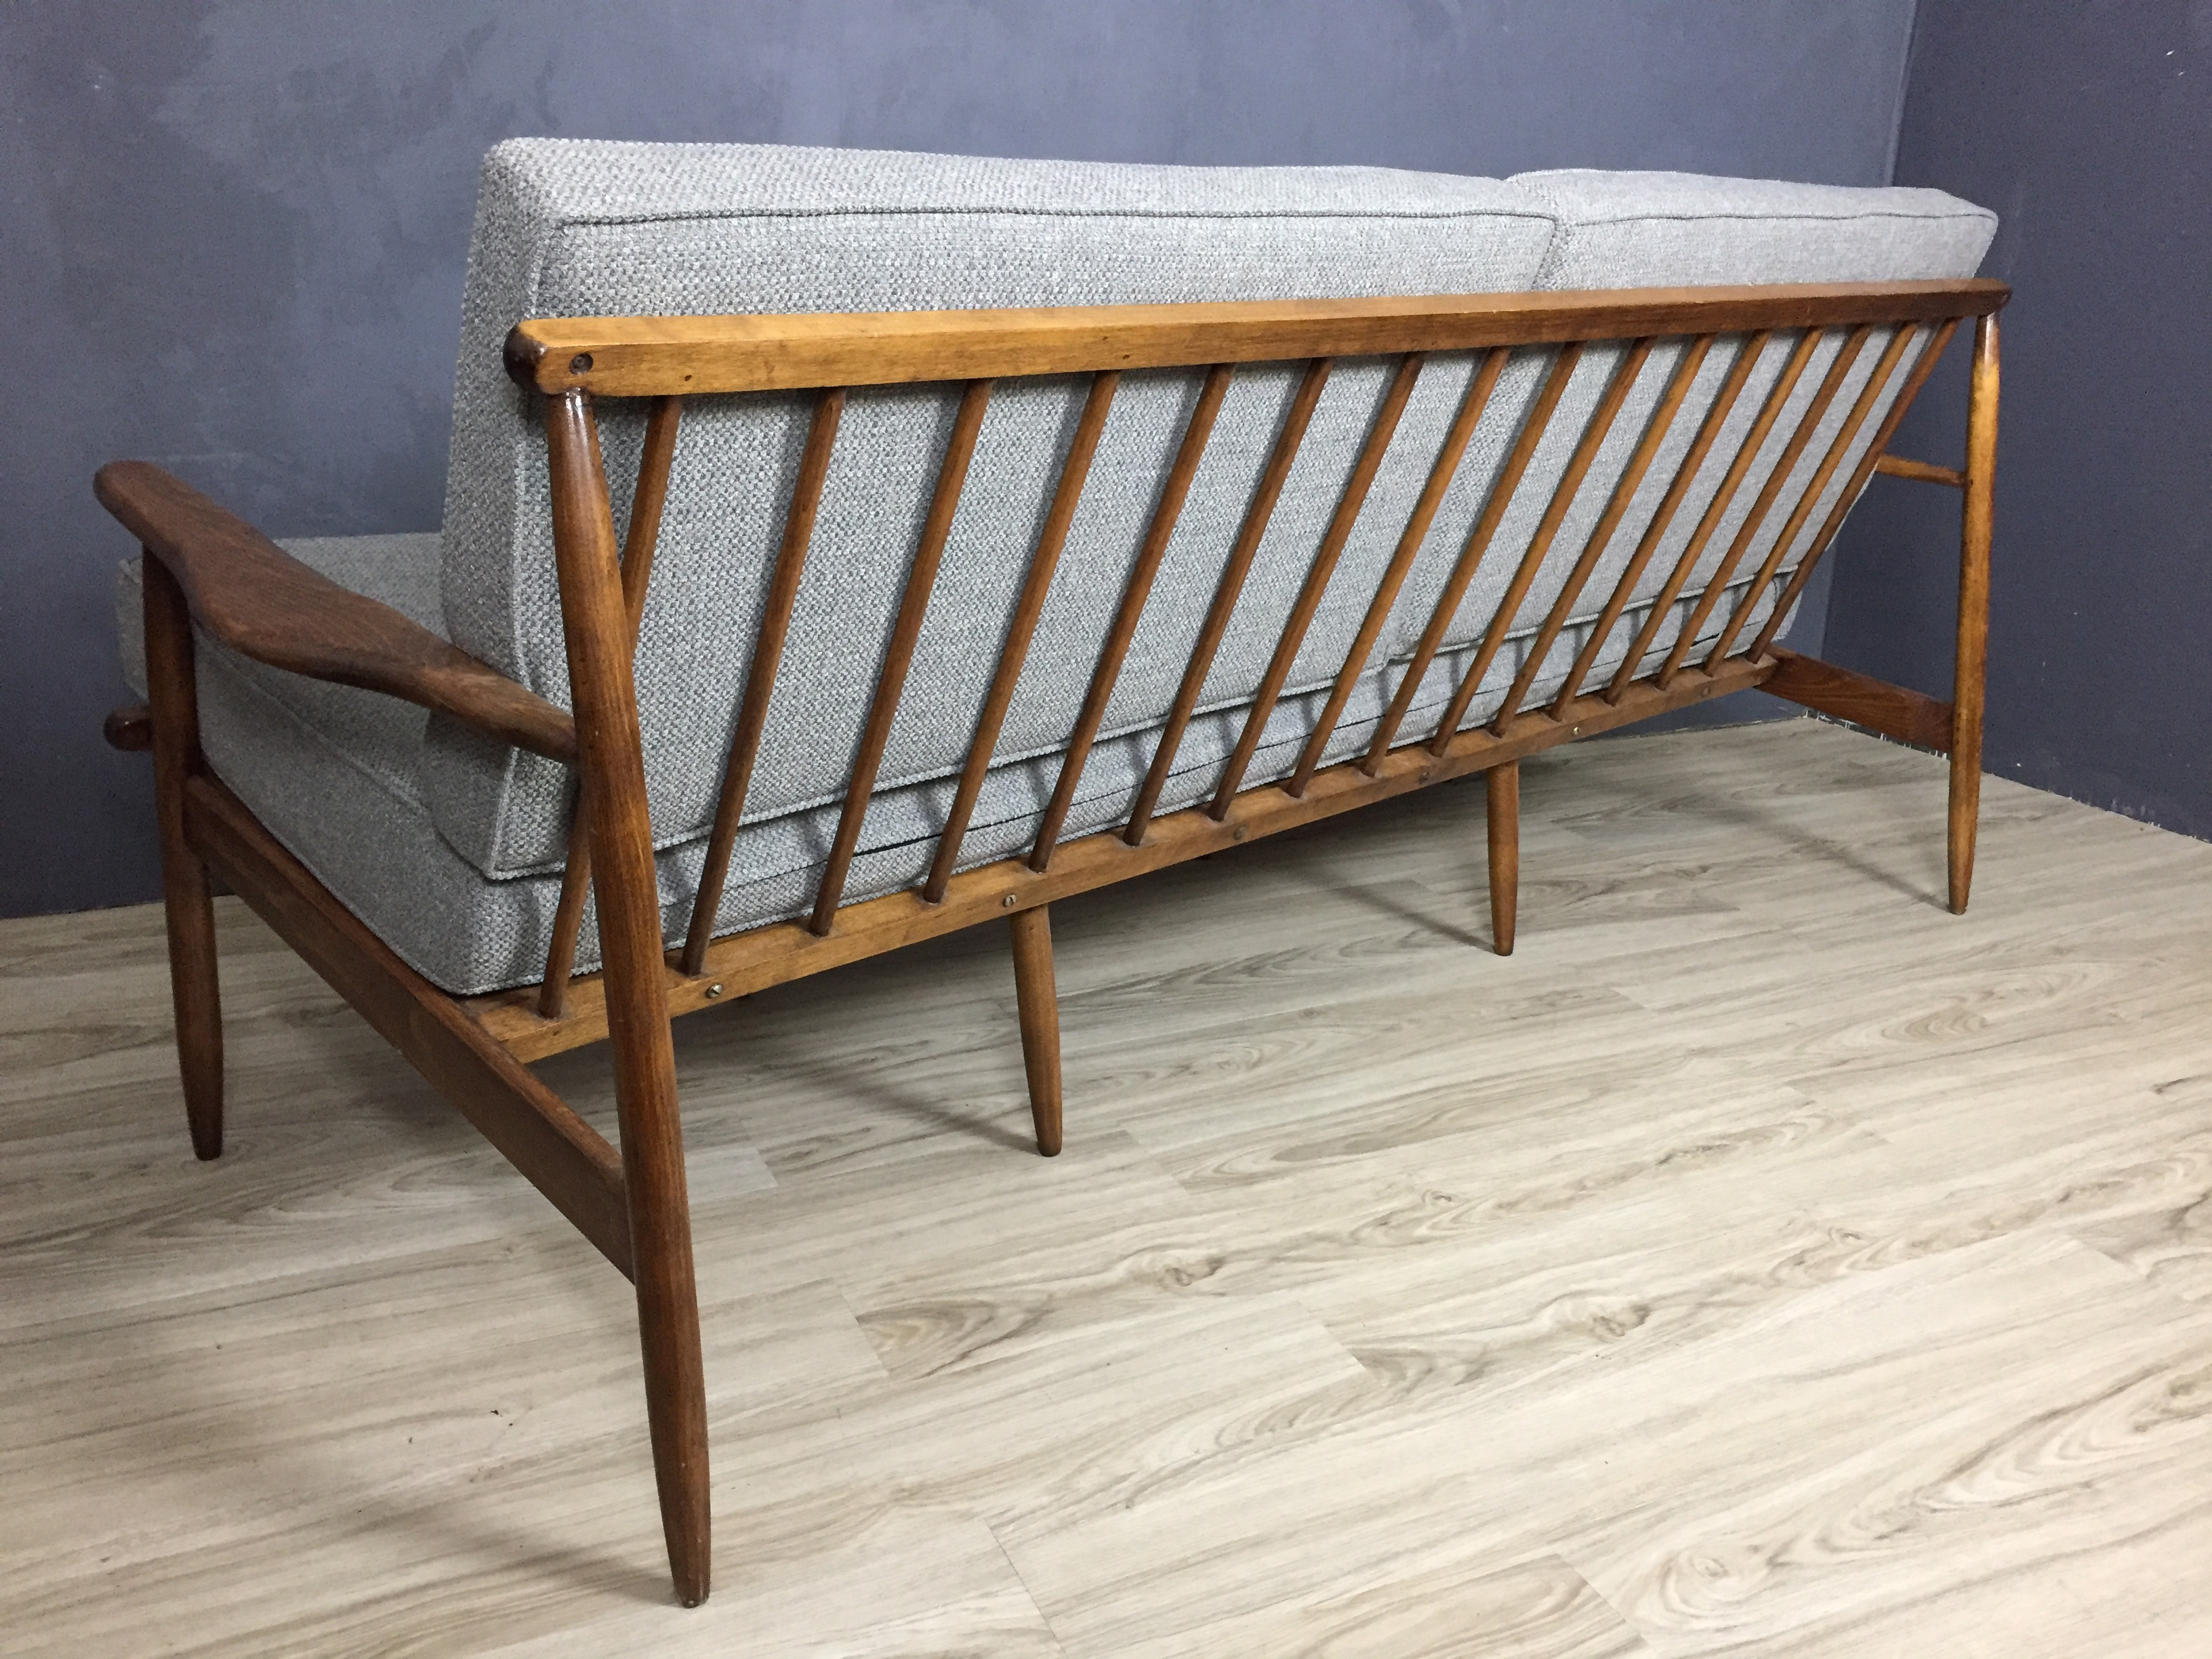 SALE - Mid Century Wood Frame Couch in Grey Upholstery